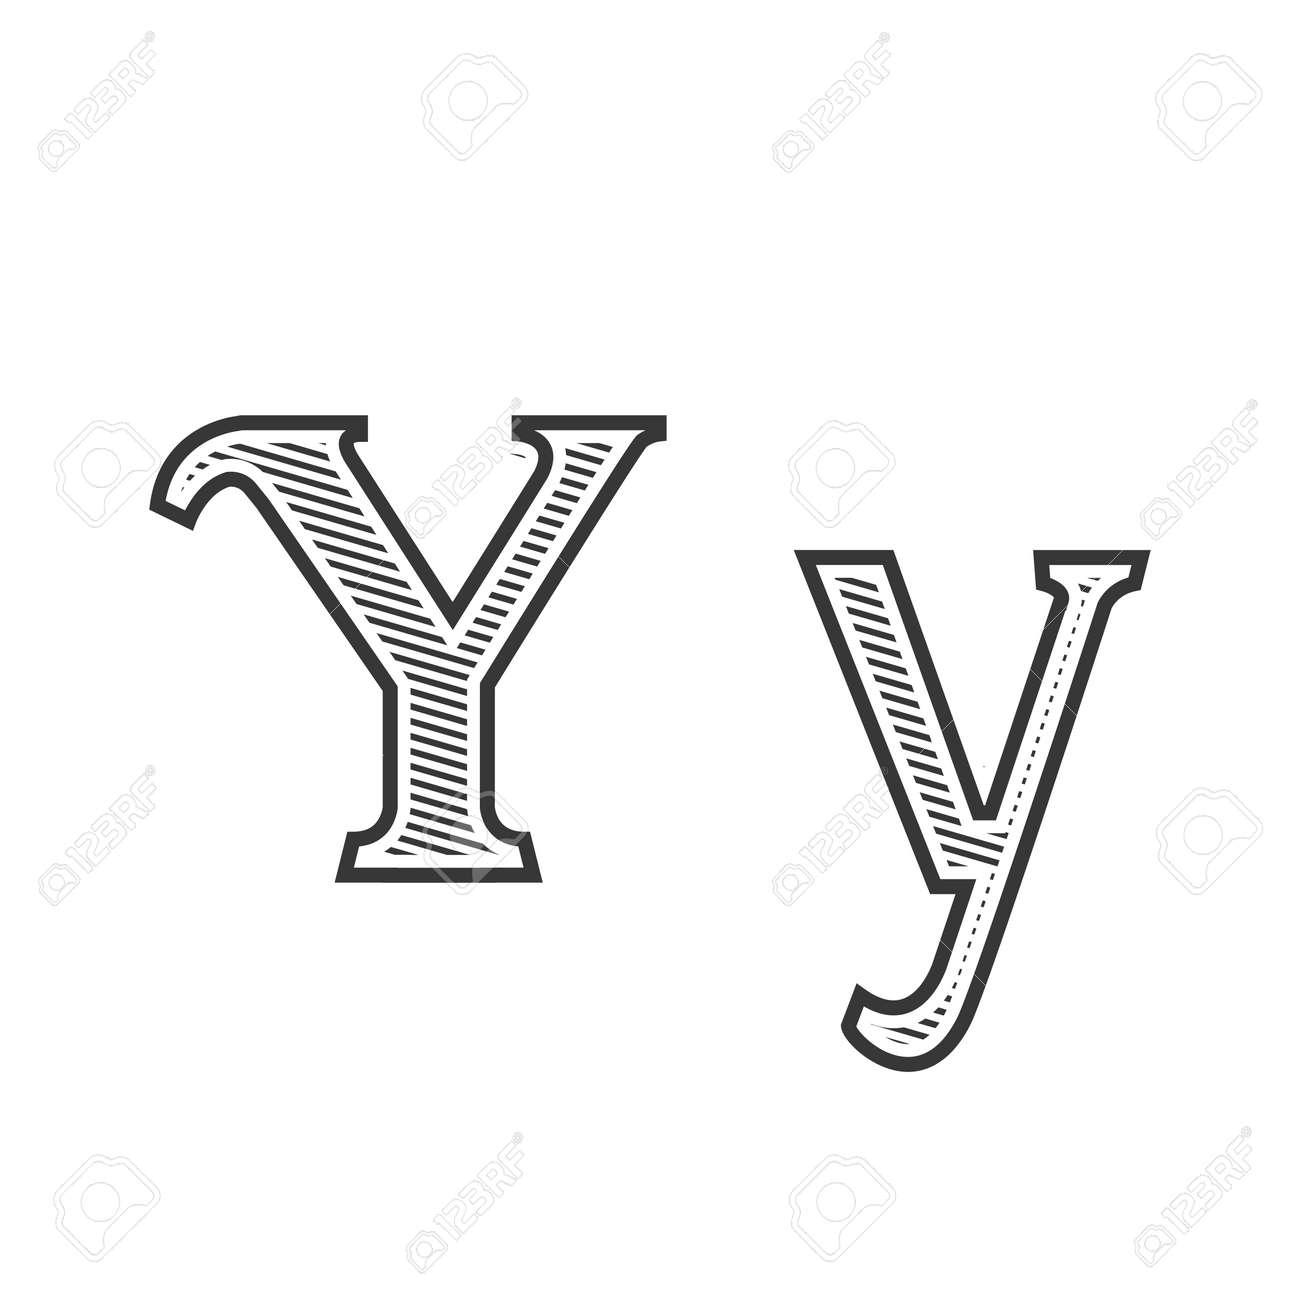 Font Tattoo Engraving Letter Y Black And White With Shading Royalty